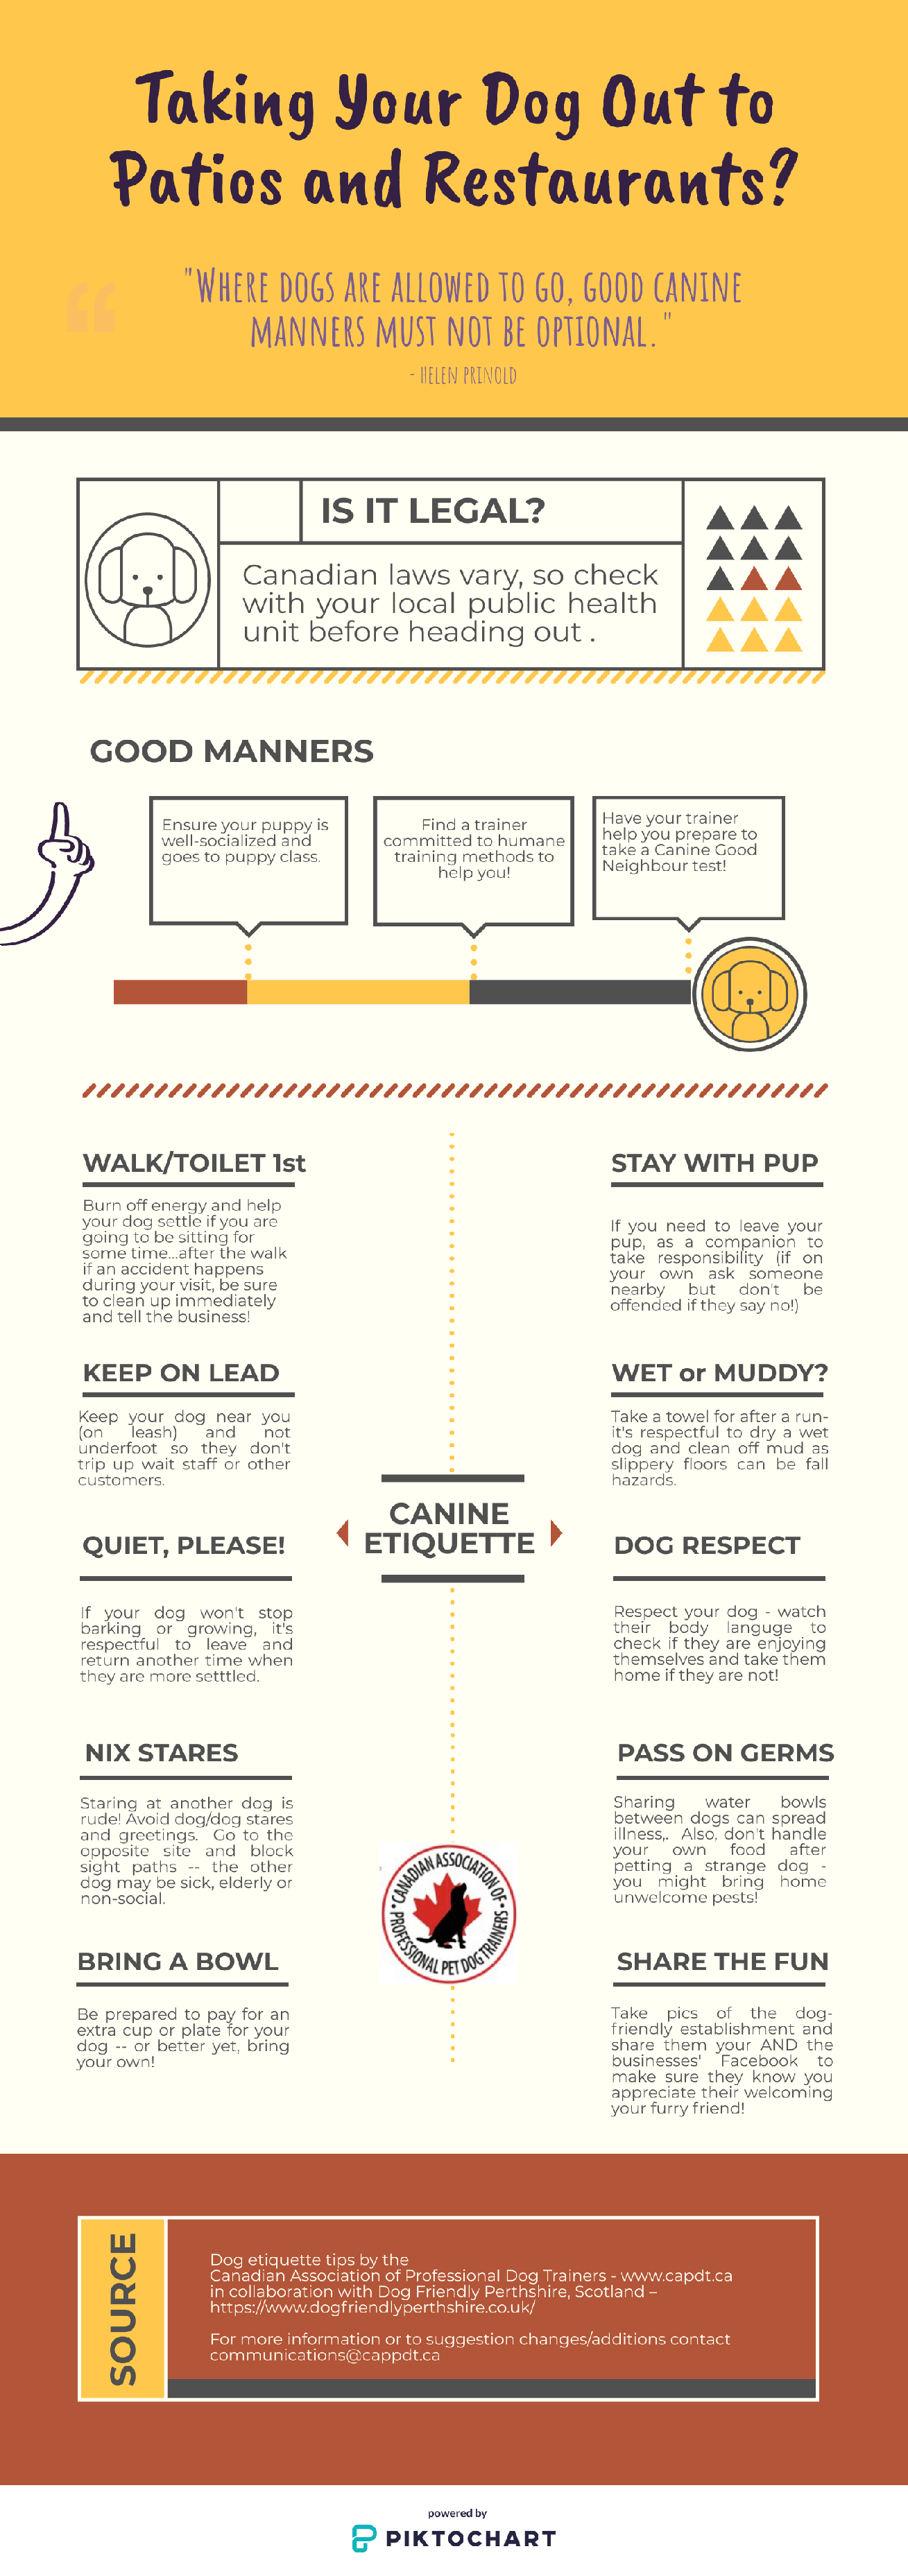 Taking Your Dog Out to Patios and Restaurants Infographic - showing various tips